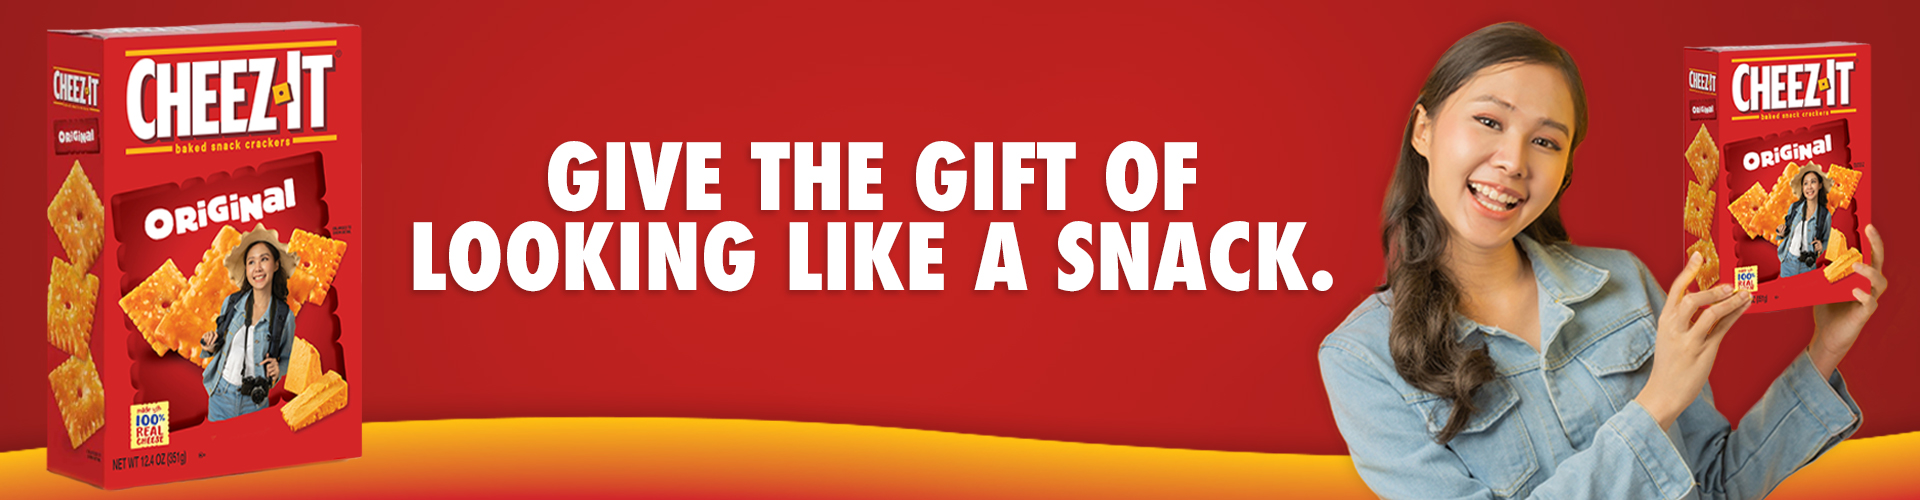 Cheez-It® Photo-on-a-Box, Give the gift of looking like a snack.